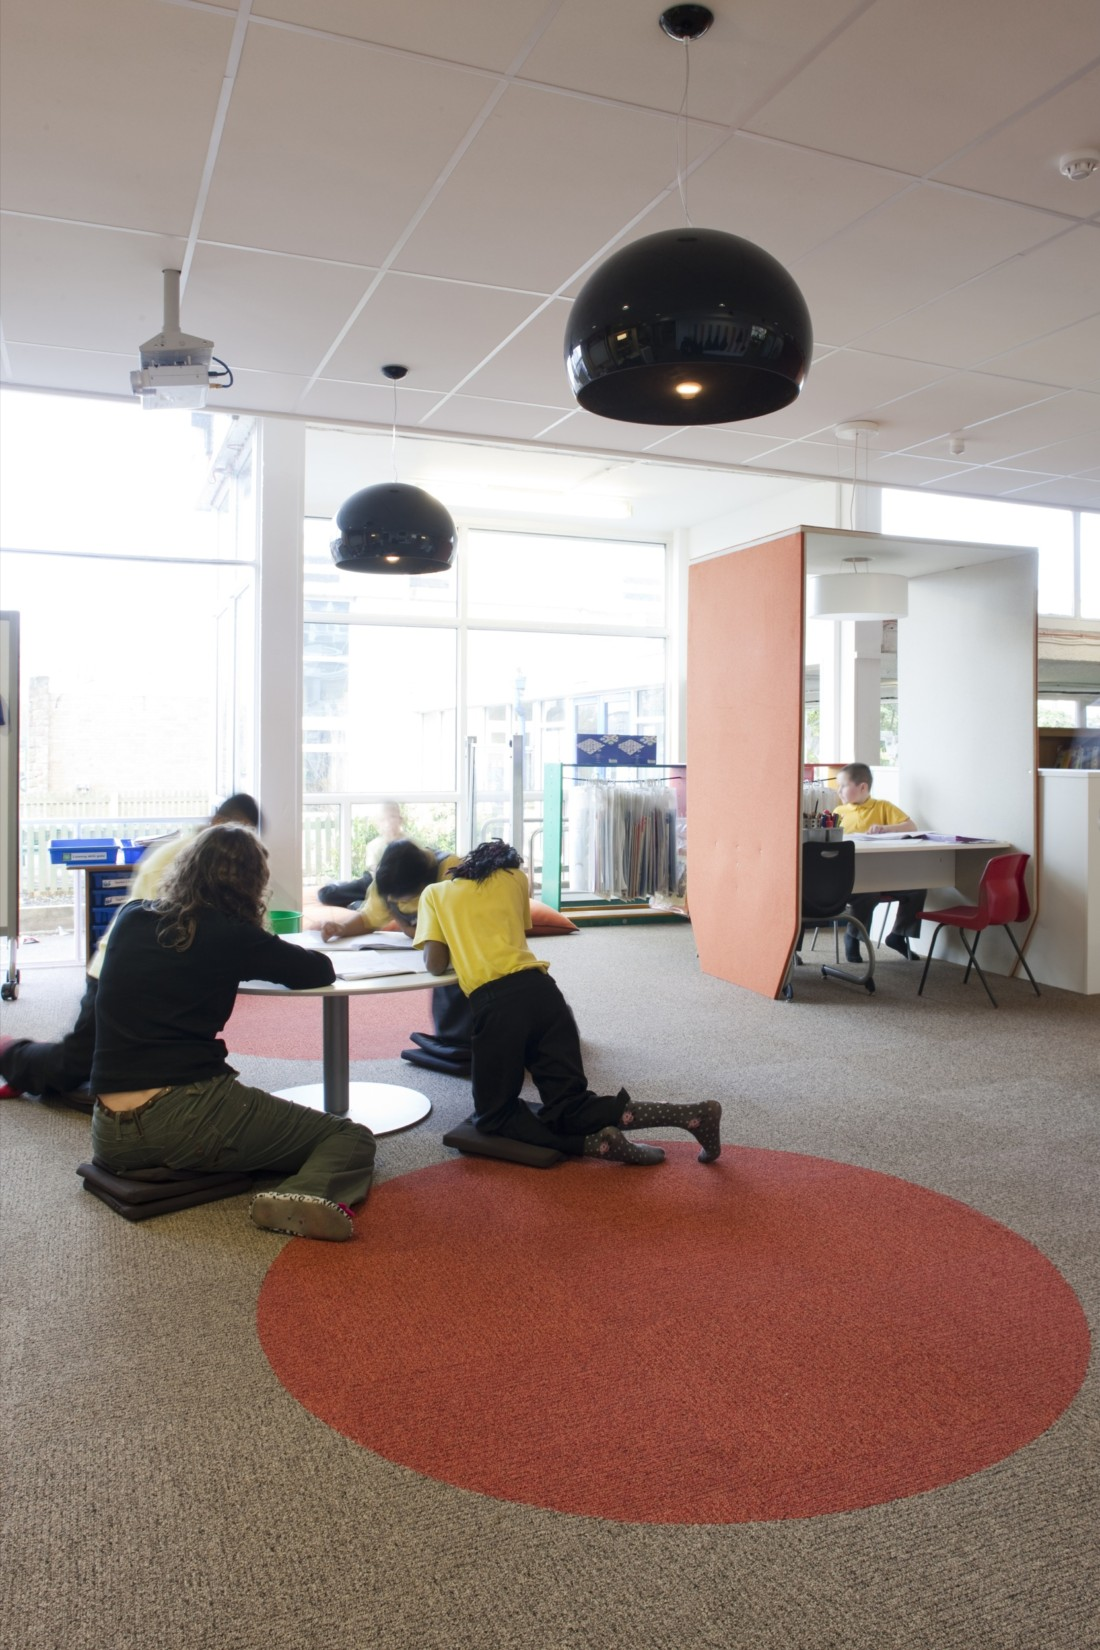 Space for Personalised Learning: Can interior design adapt to varied learning styles? 4